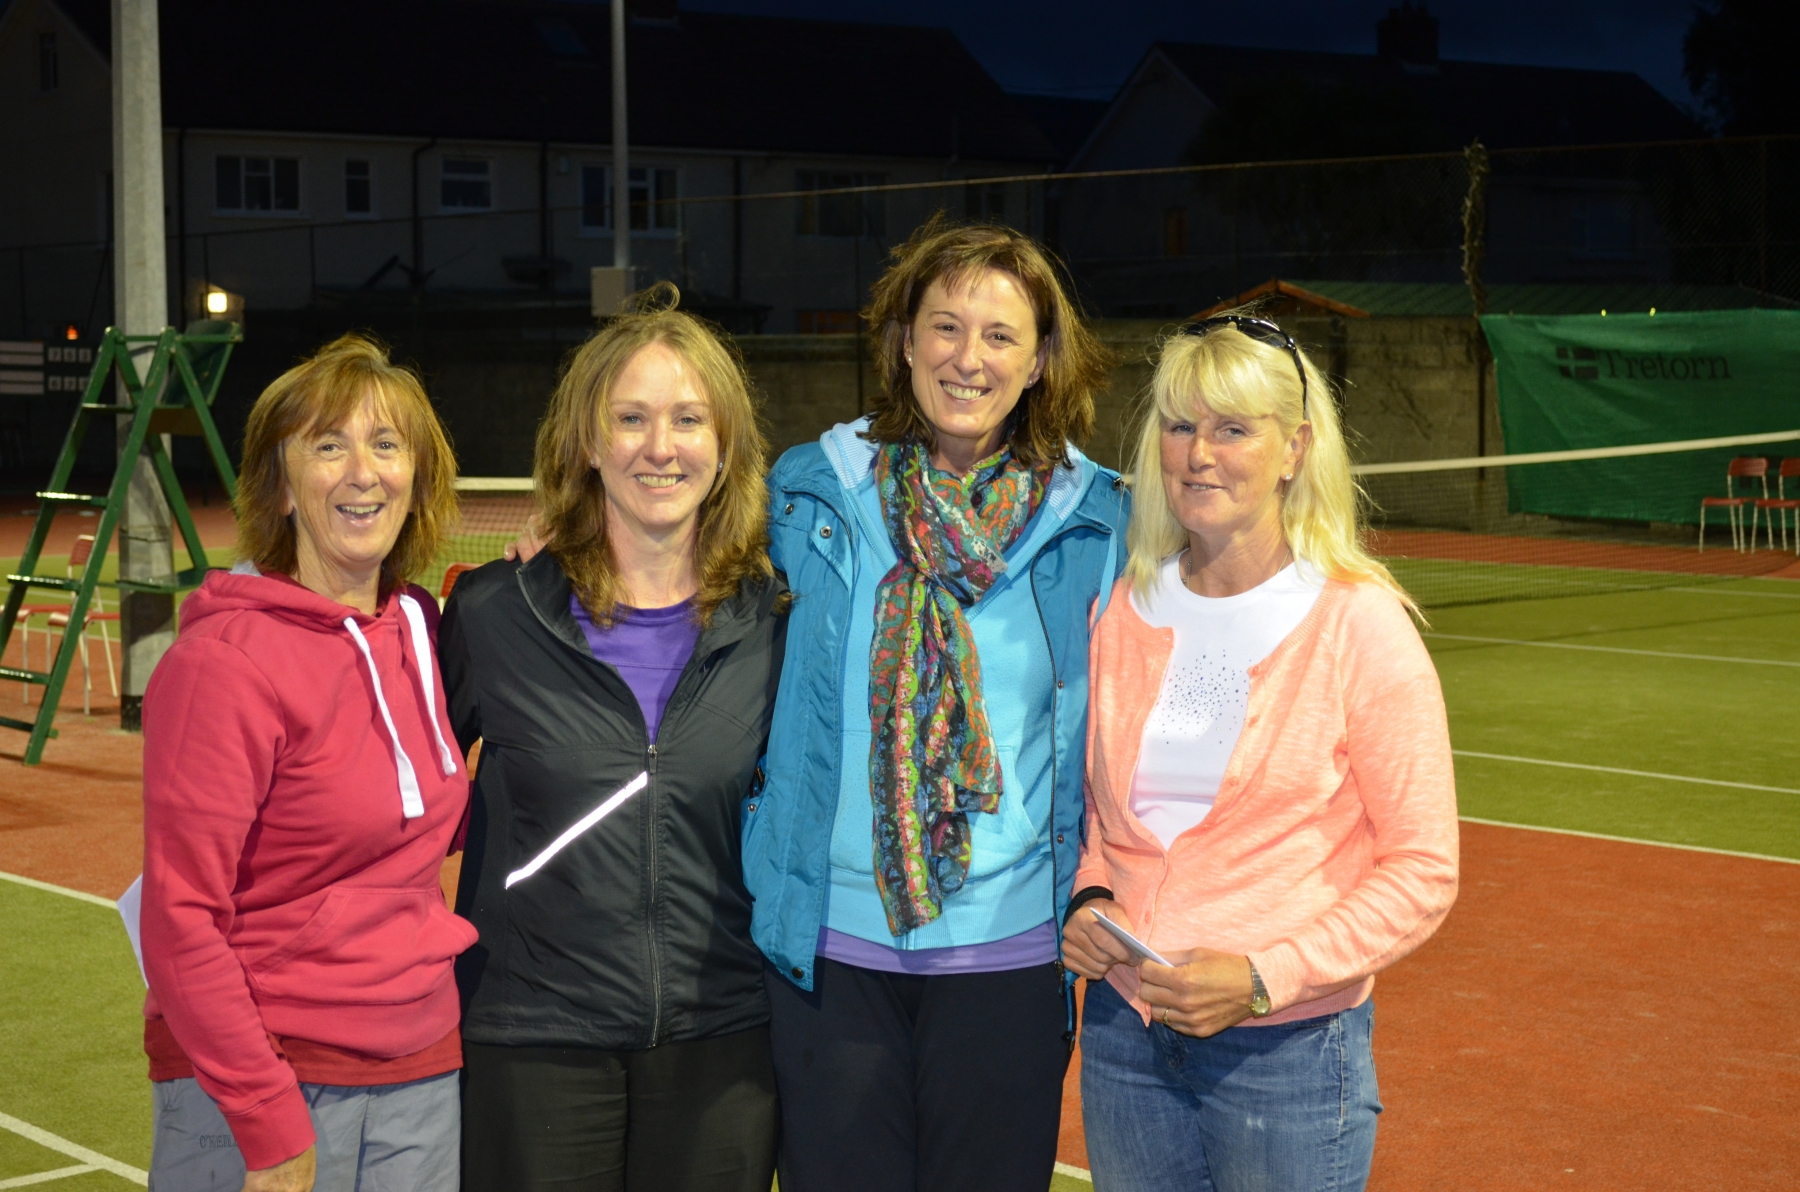 Ladies-Doubles-Class-4-5-Finalists-Samantha-Alford-Ann-Raleigh-v-Therese-Ryan-Sheena-Gogarty-Not-Present-